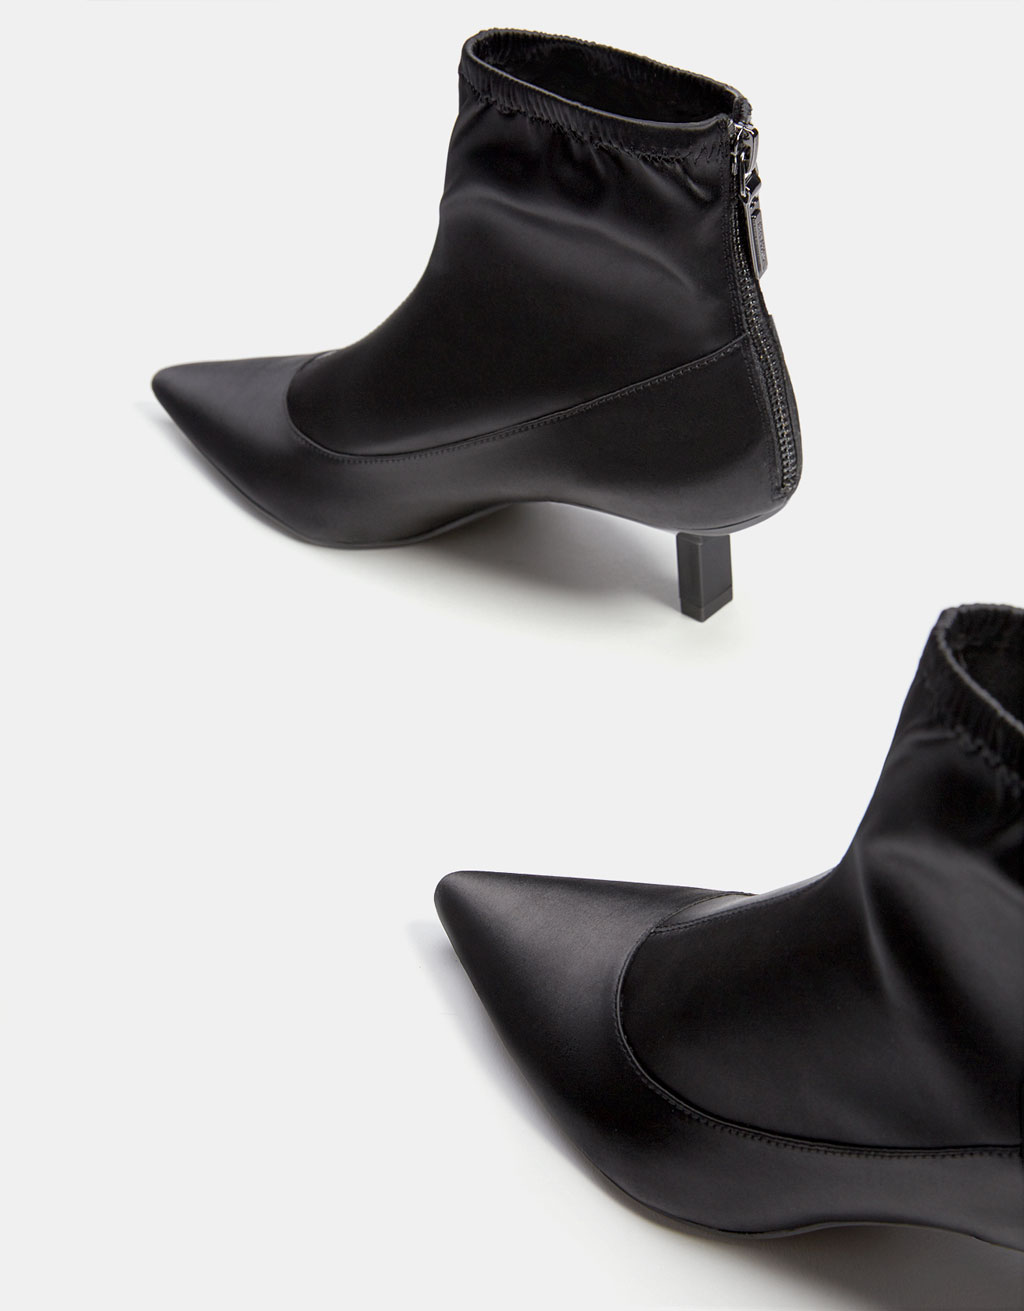 Bottines à talon midi satin